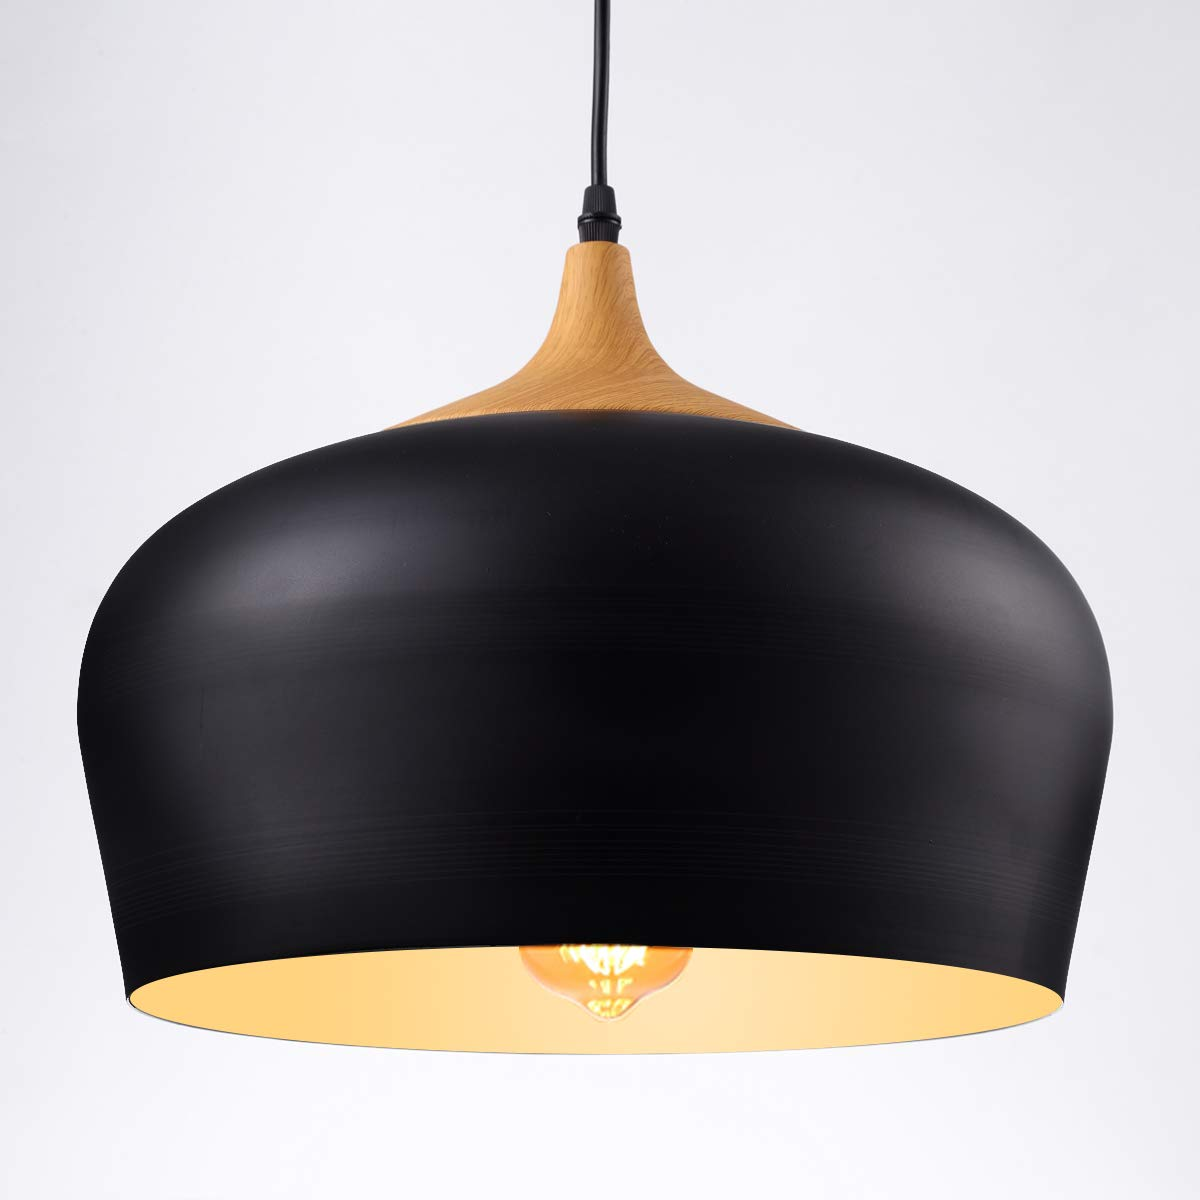 HOMIFORCE Vintage Style 1 Light Large Black Dome Pendant Light with Metal Shade in Matte-Black Finish-Modern Industrial Edison Style Hanging CL000502(Kopff Black) by HOMIFORCE